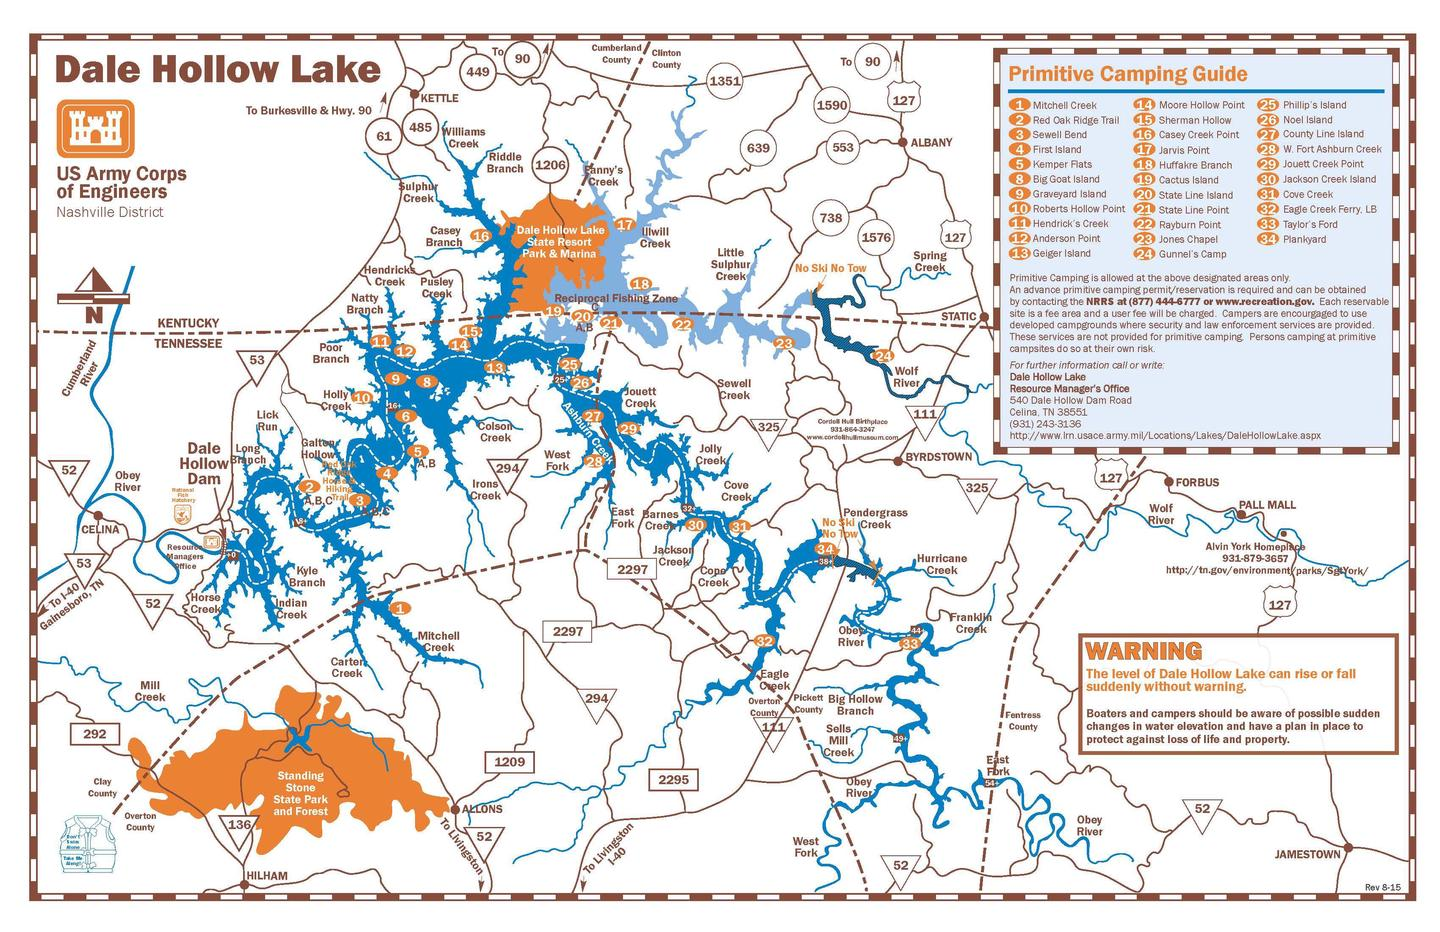 DALE HOLLOW LAKE PRIMITIVE CAMPING MAP